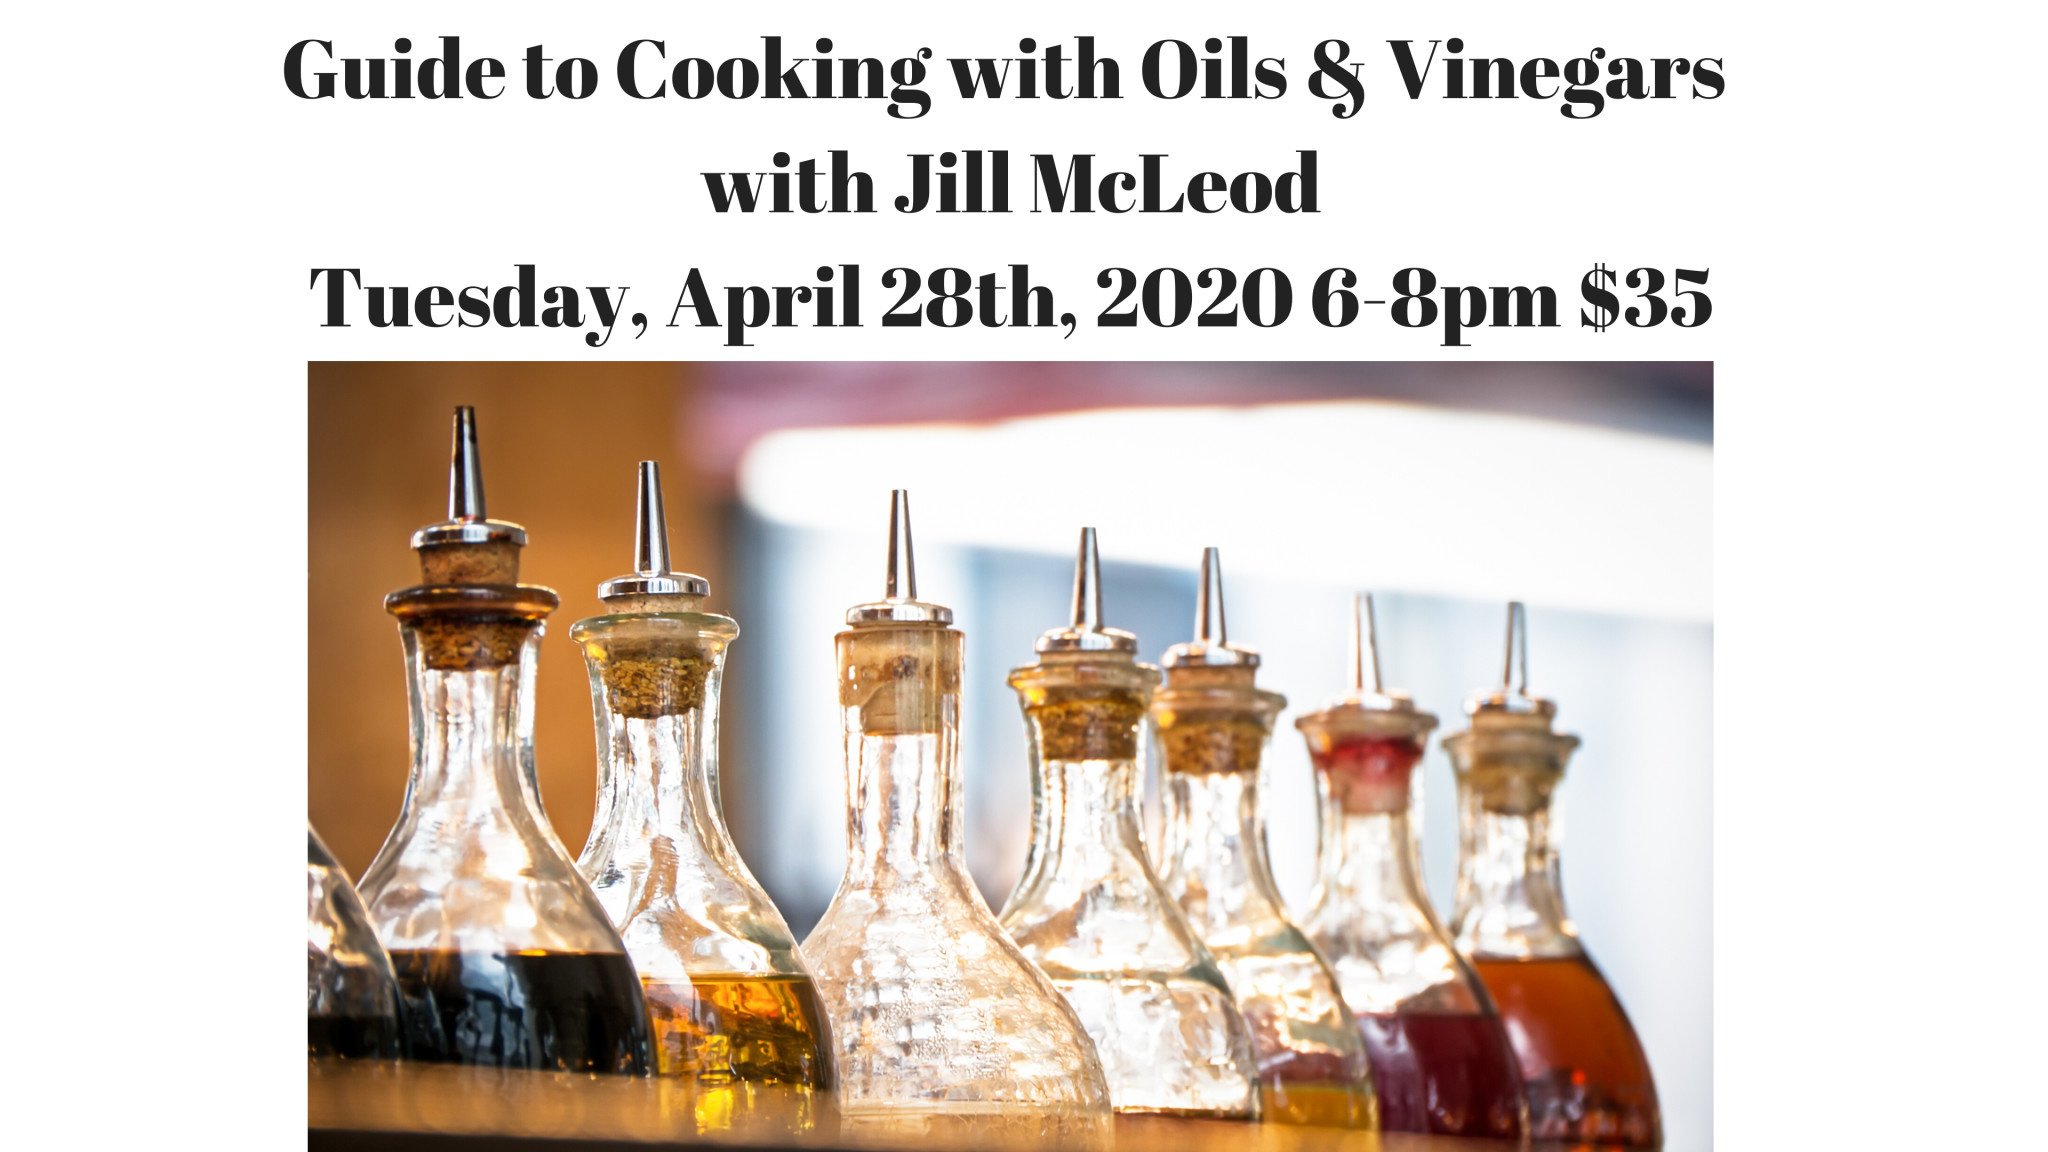 Guide to Cooking with Oils & Vinegars 4/28/20